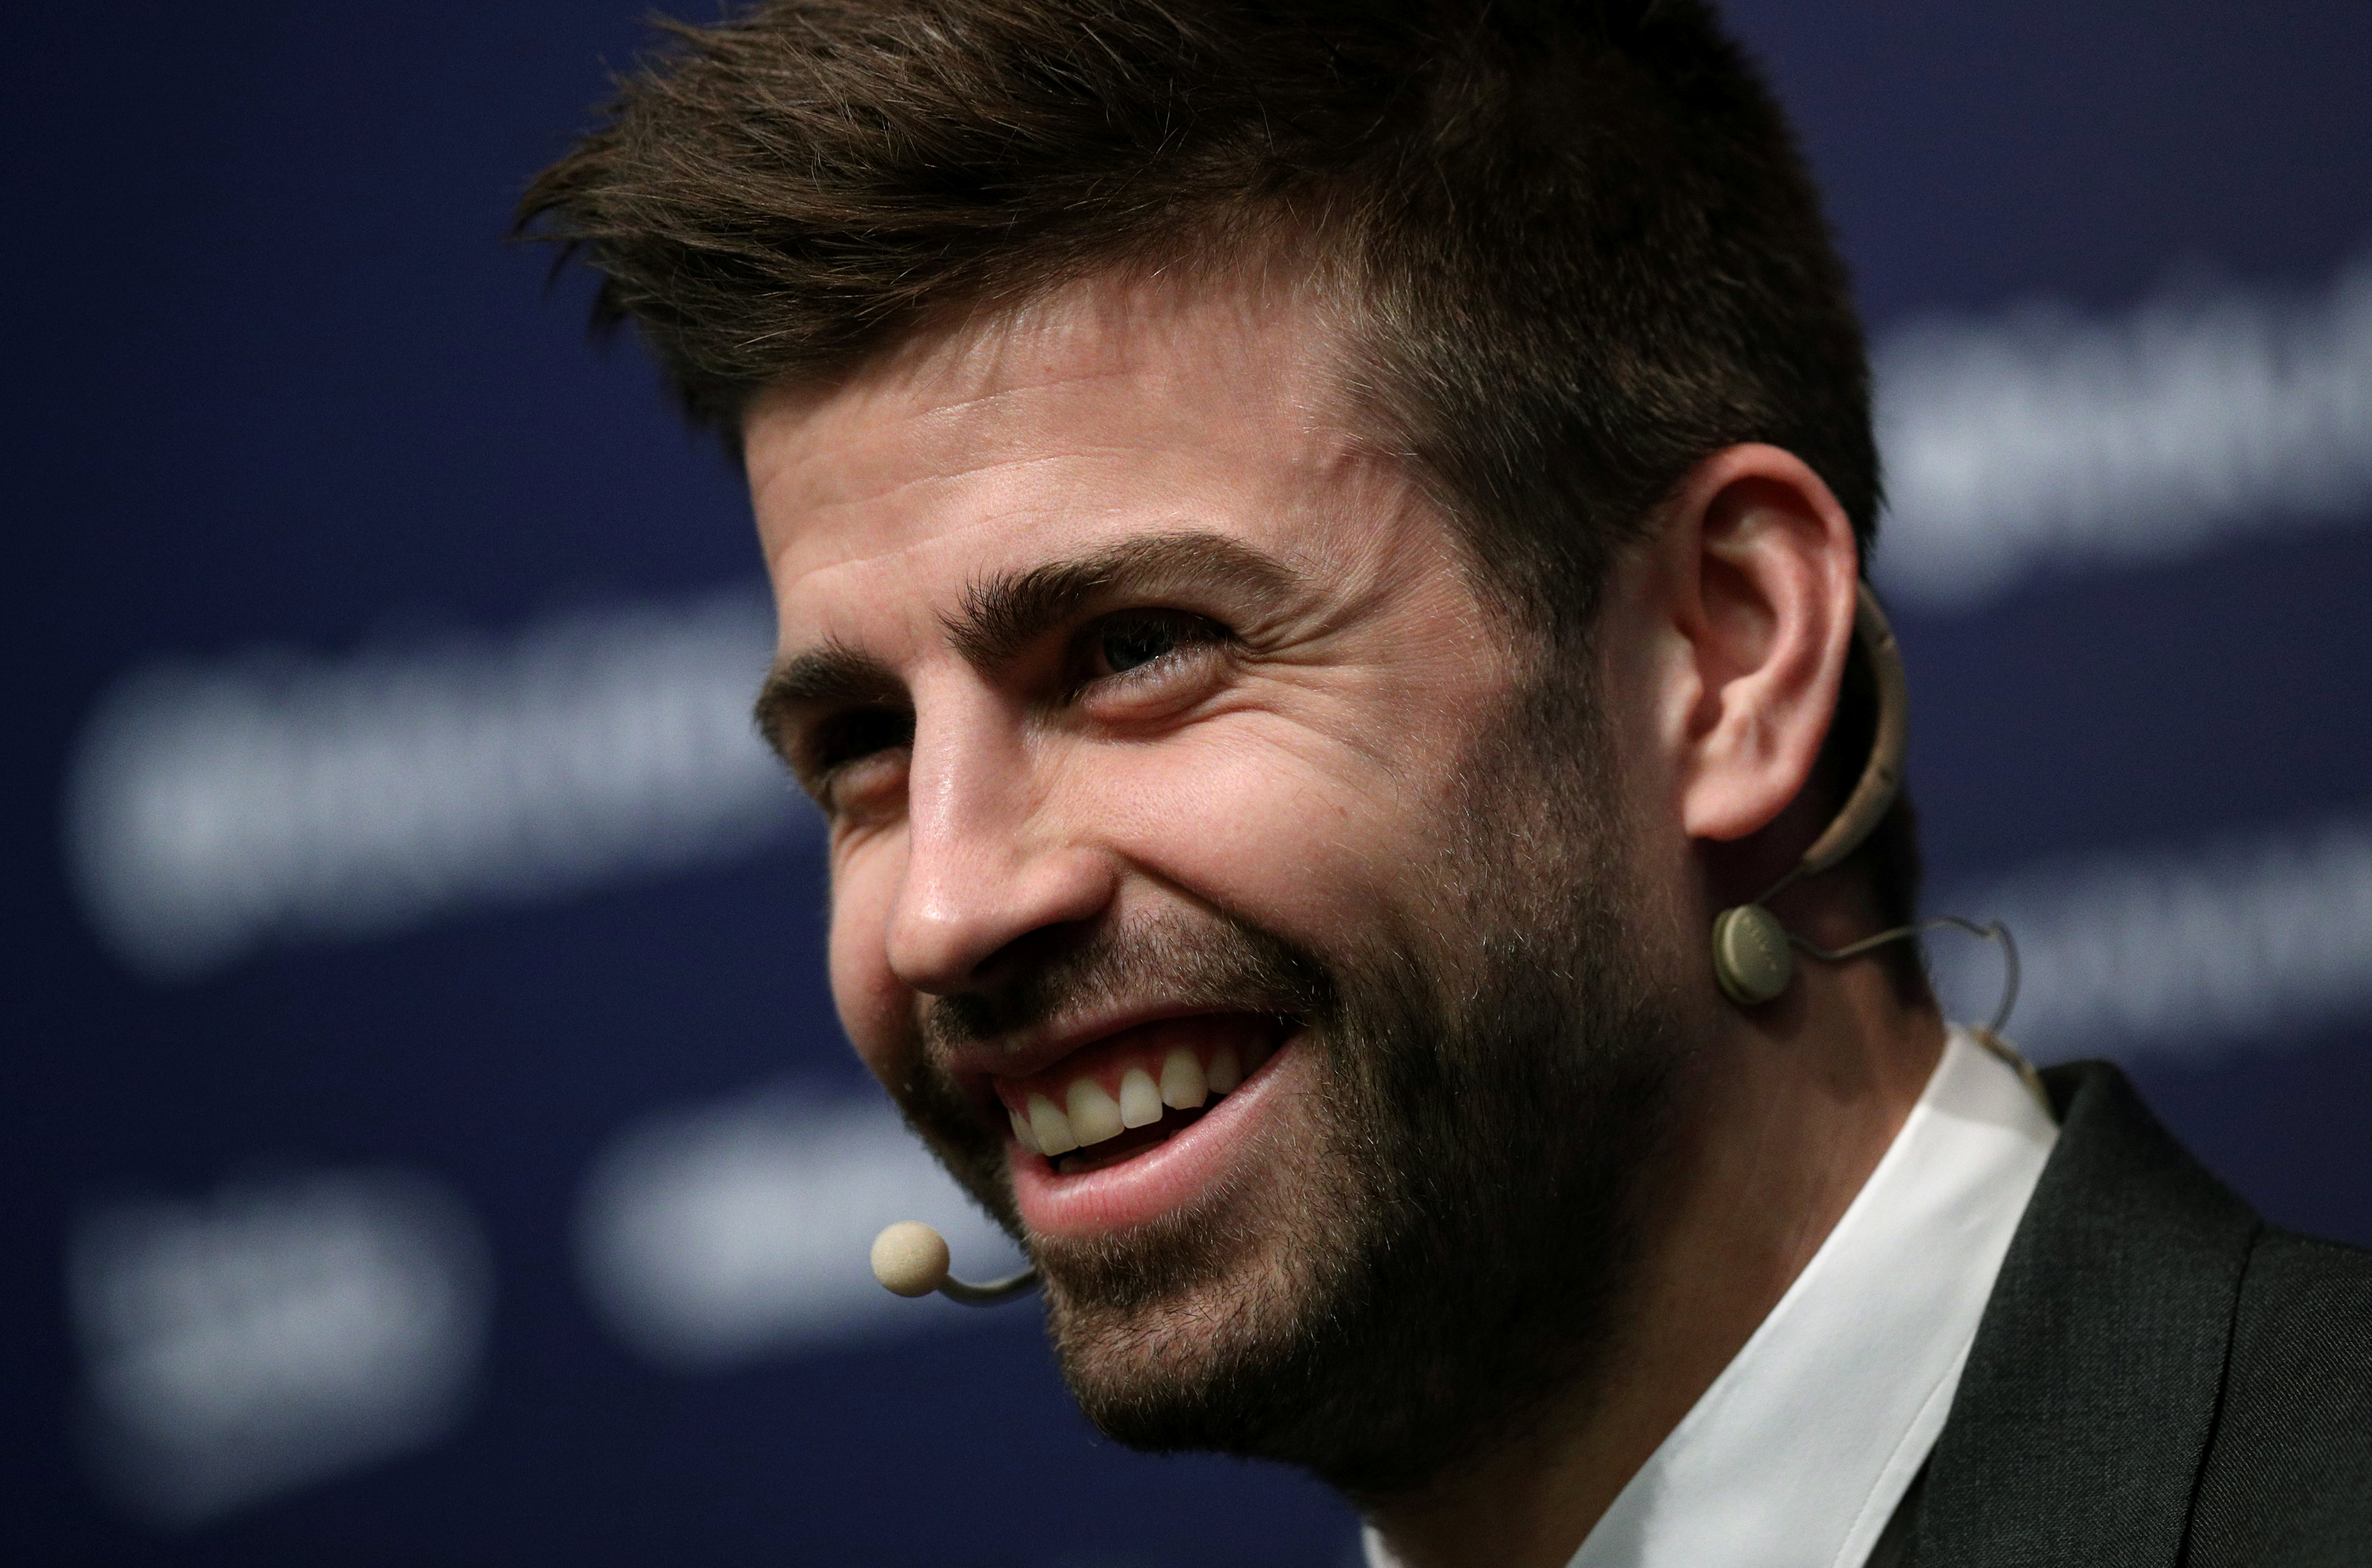 Football: Barca's Pique extends contract until 2022